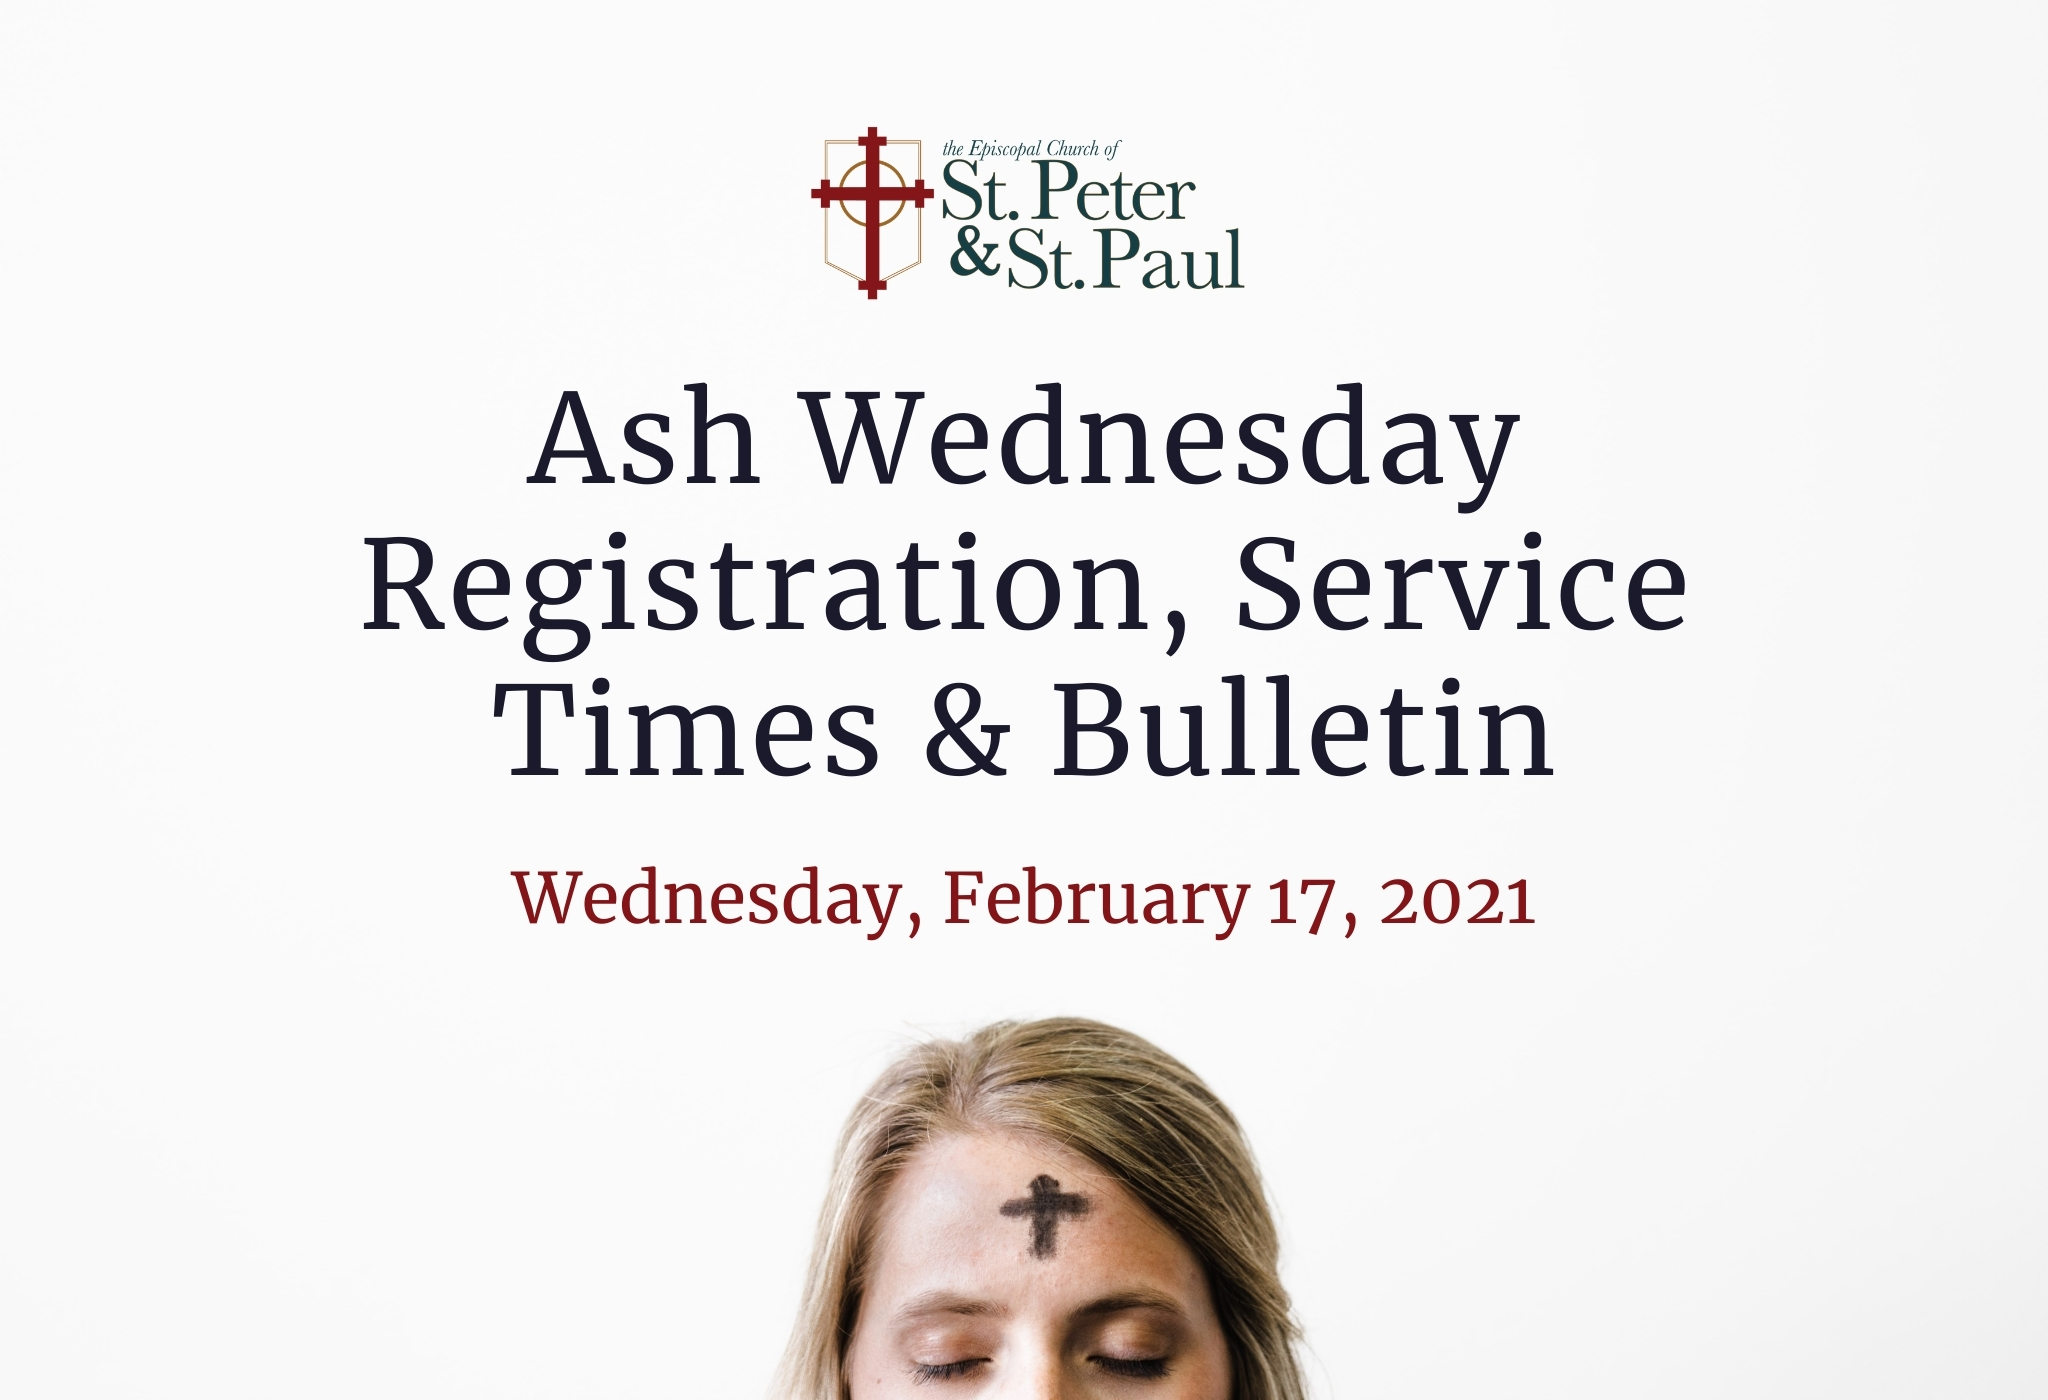 2021 Ash Wednesday Registration, Service Times & Bulletin